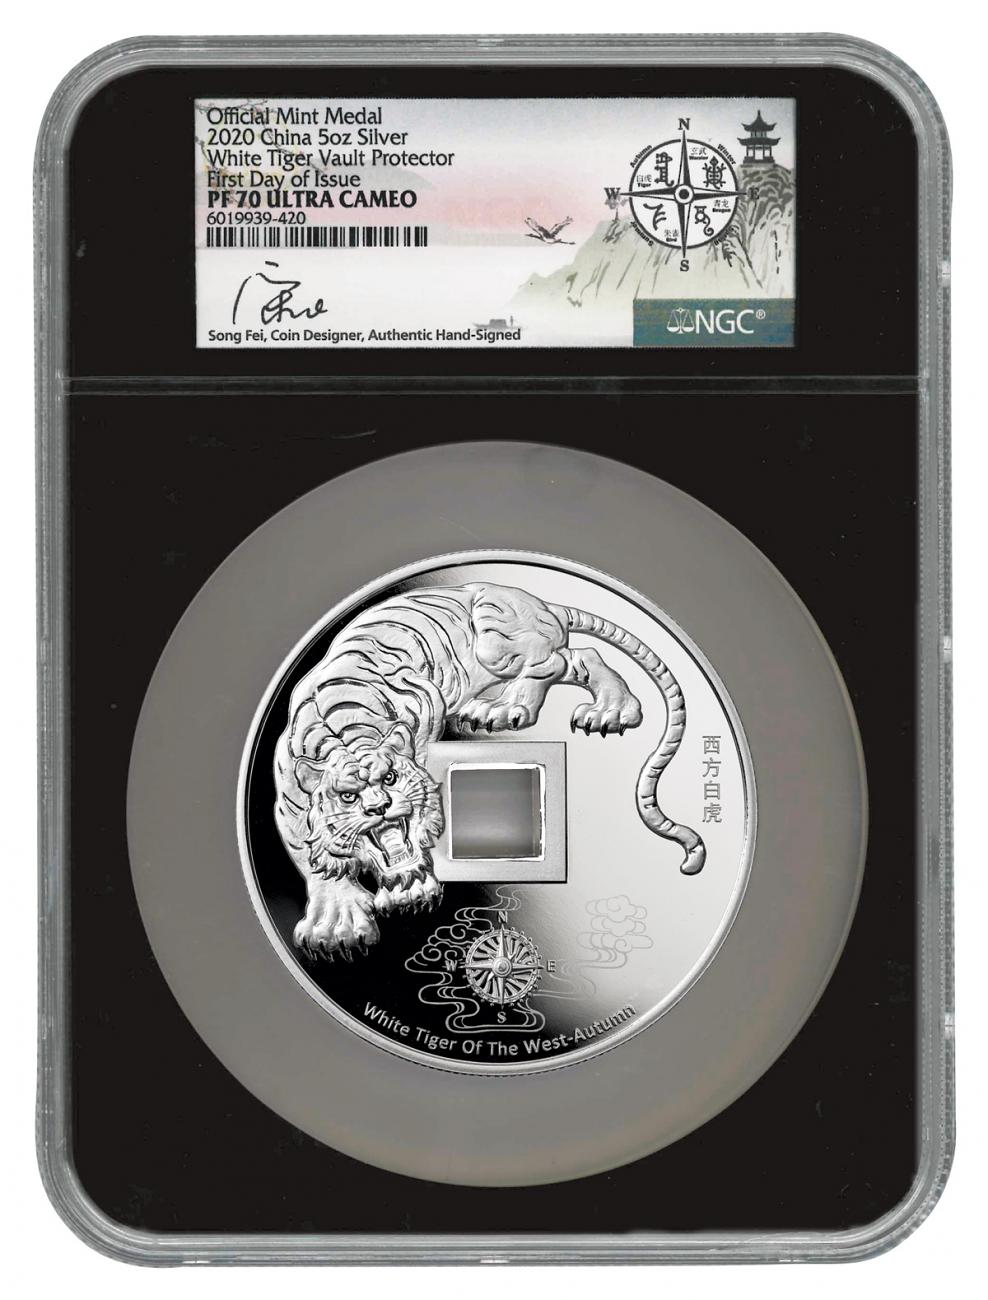 2020 China White Tiger of the West Vault Protector 5 oz Silver Proof Medal Scarce and Unique Coin Division NGC PF70 UC FDI Song Fei Signed Label